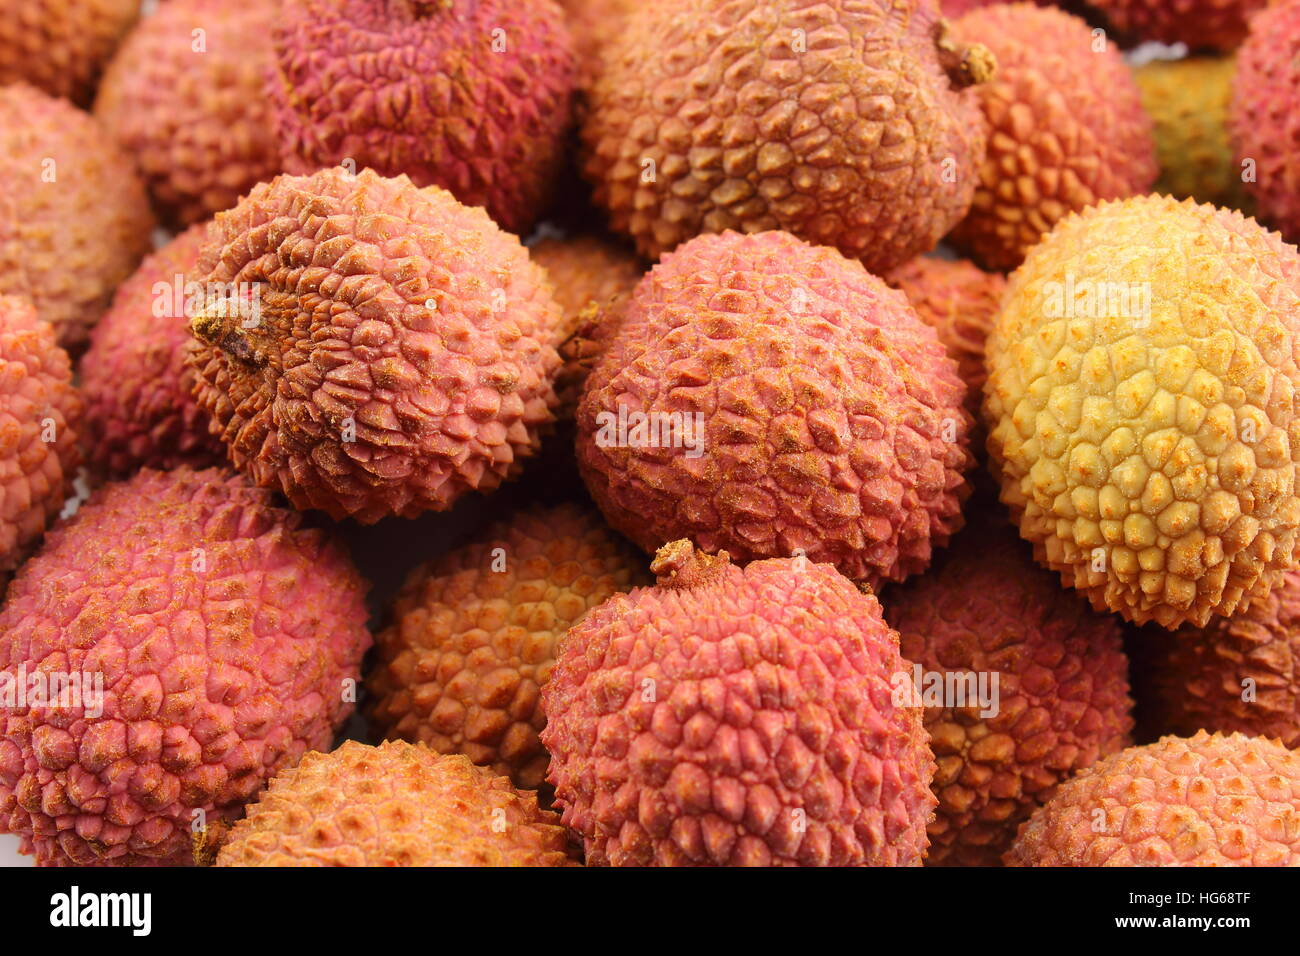 lychee fruits closeup food background texture - Stock Image